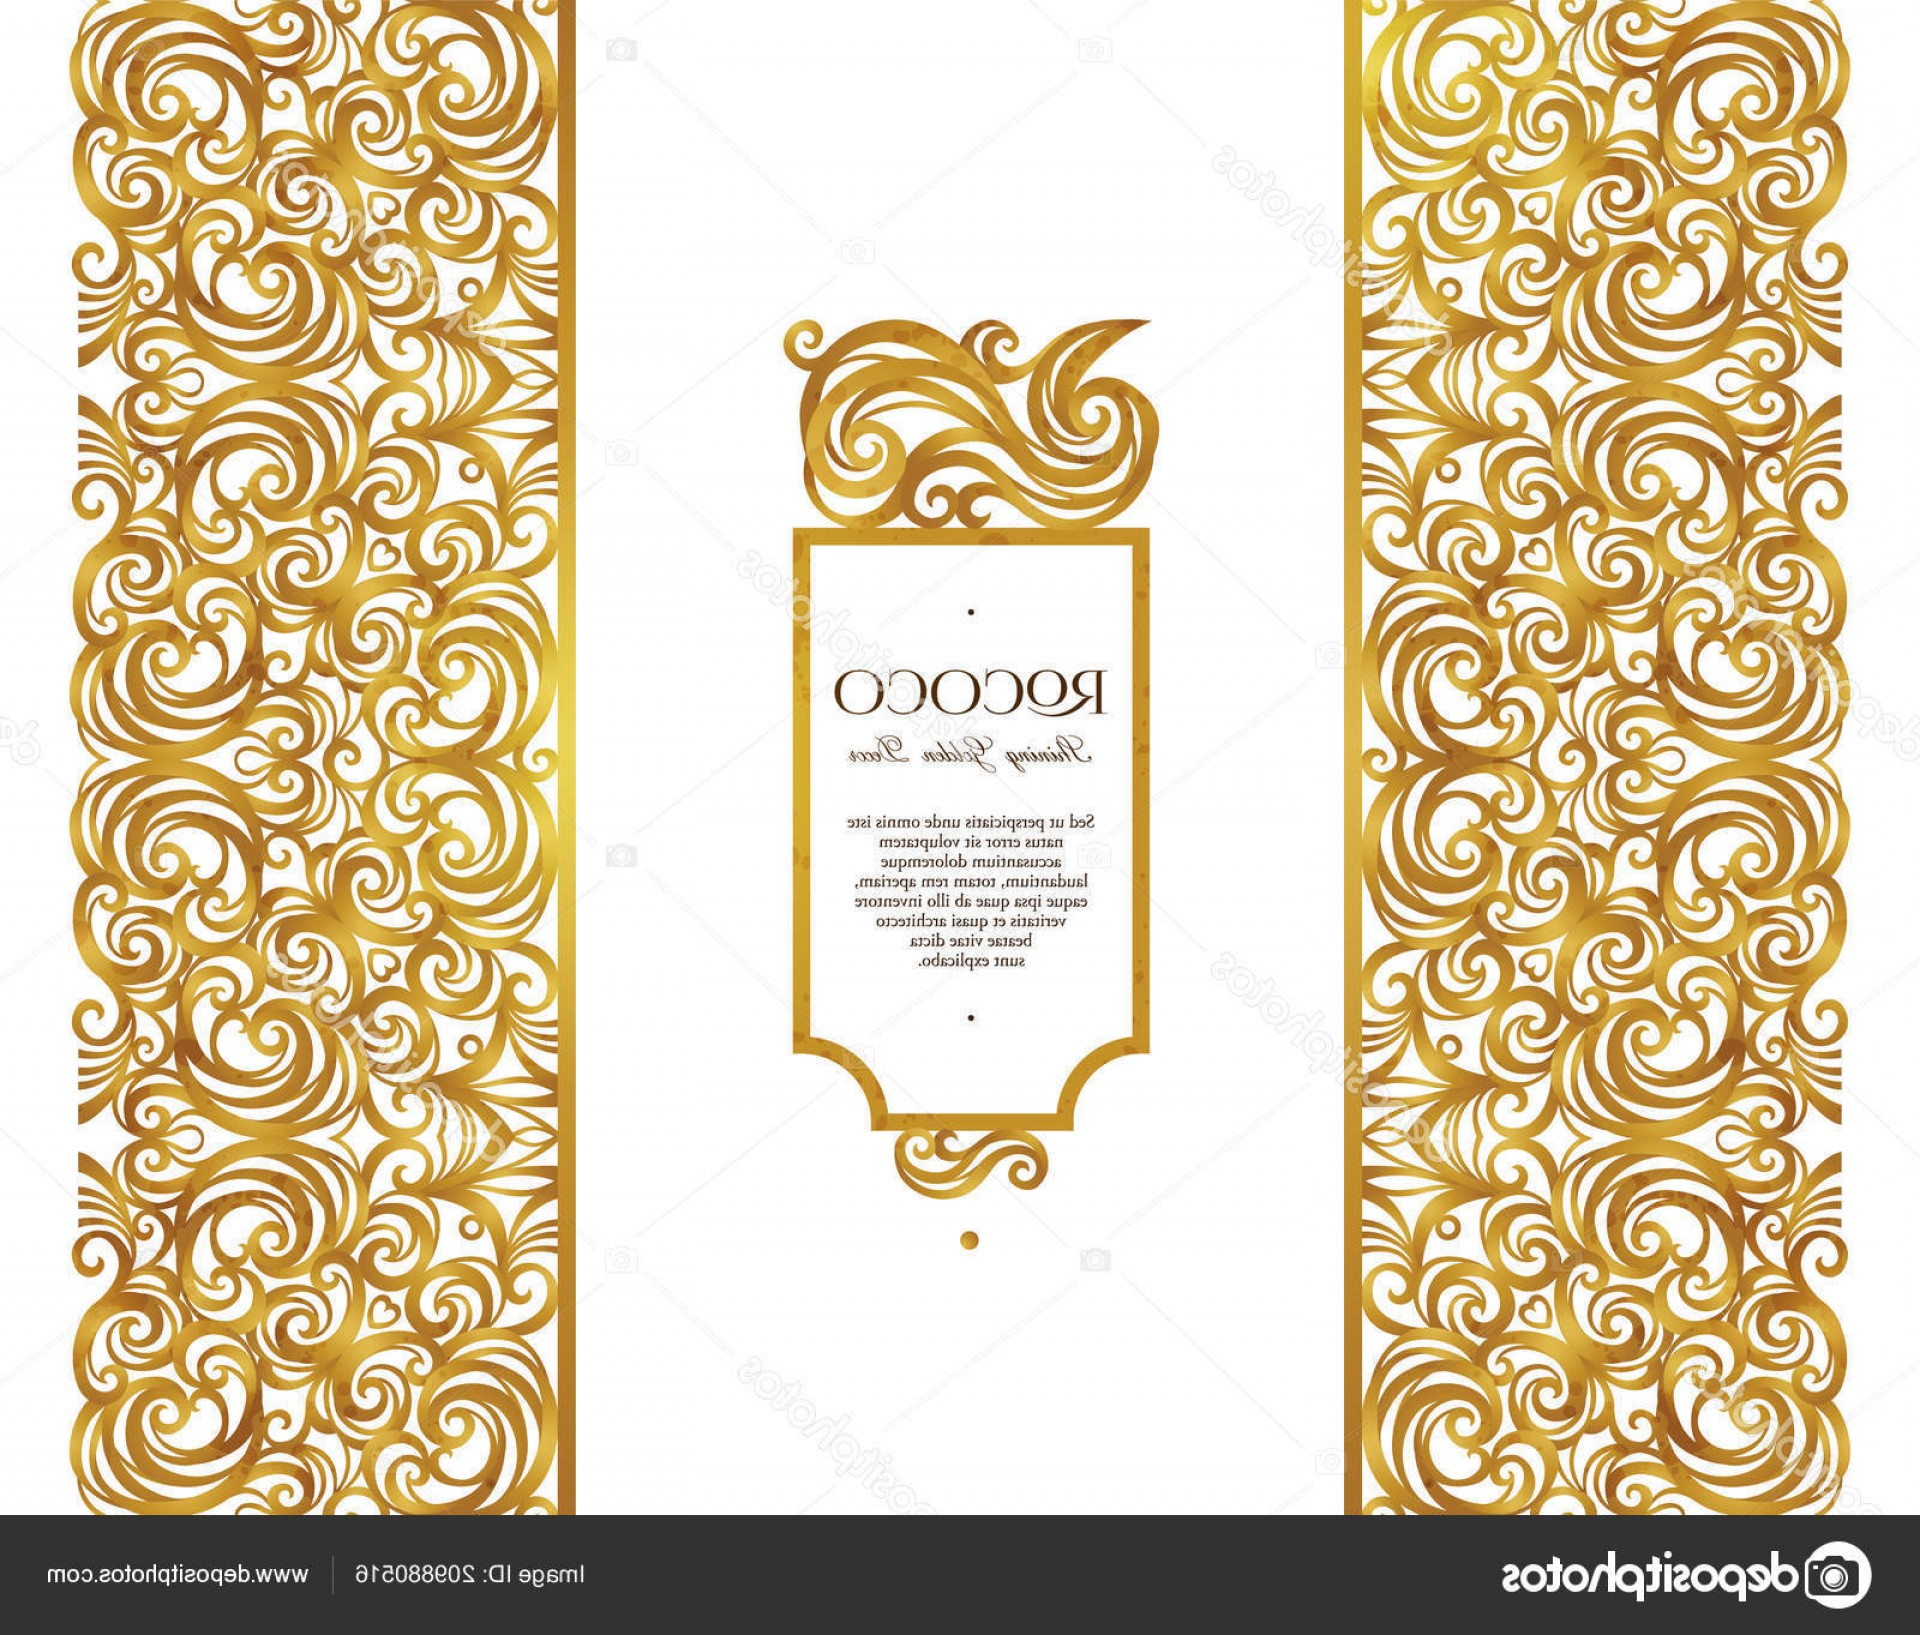 Gold Ornate Borders Vector: Stock Illustration Vector Vintage Frame Ornate Floral